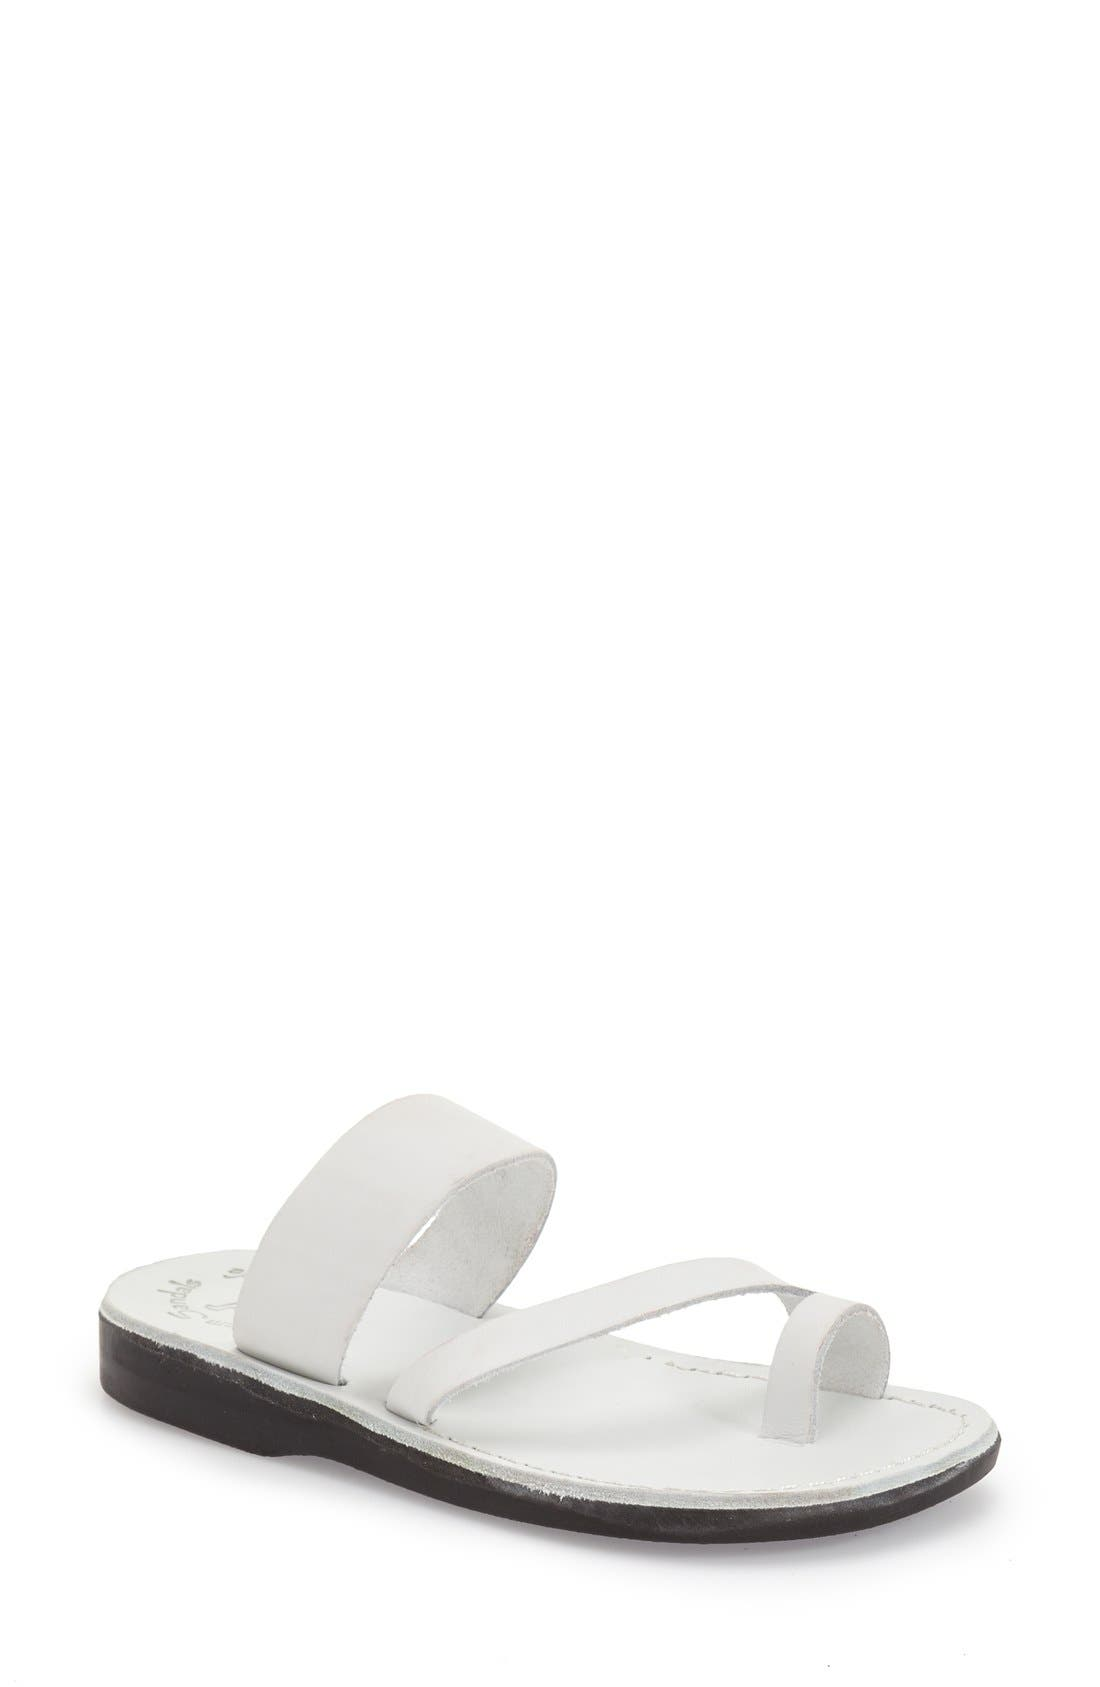 'Zohar' Leather Sandal,                             Main thumbnail 4, color,